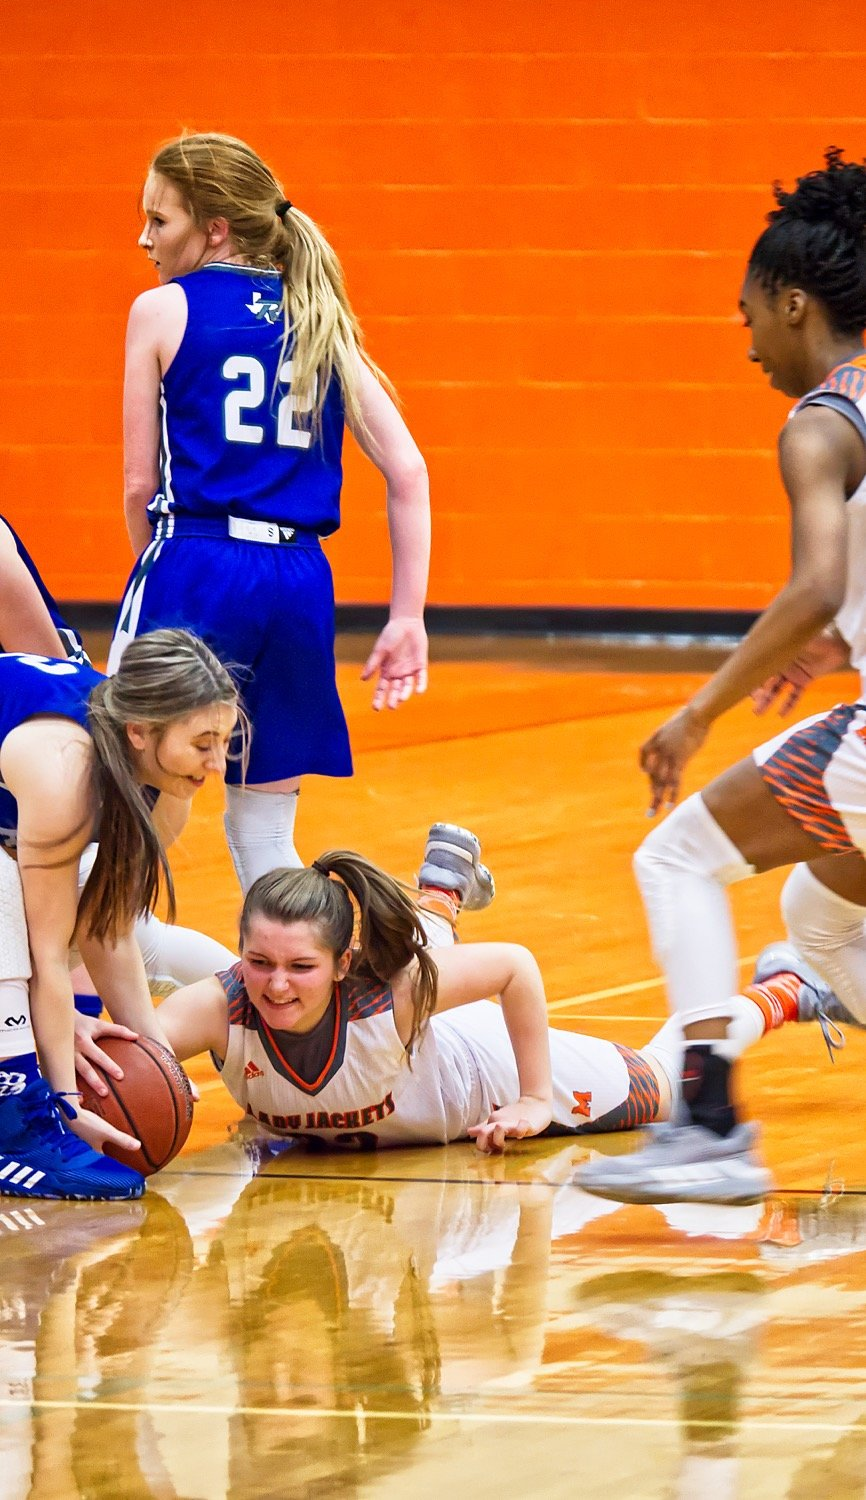 Cyndi Butler gets on the ground to track down a loose ball.